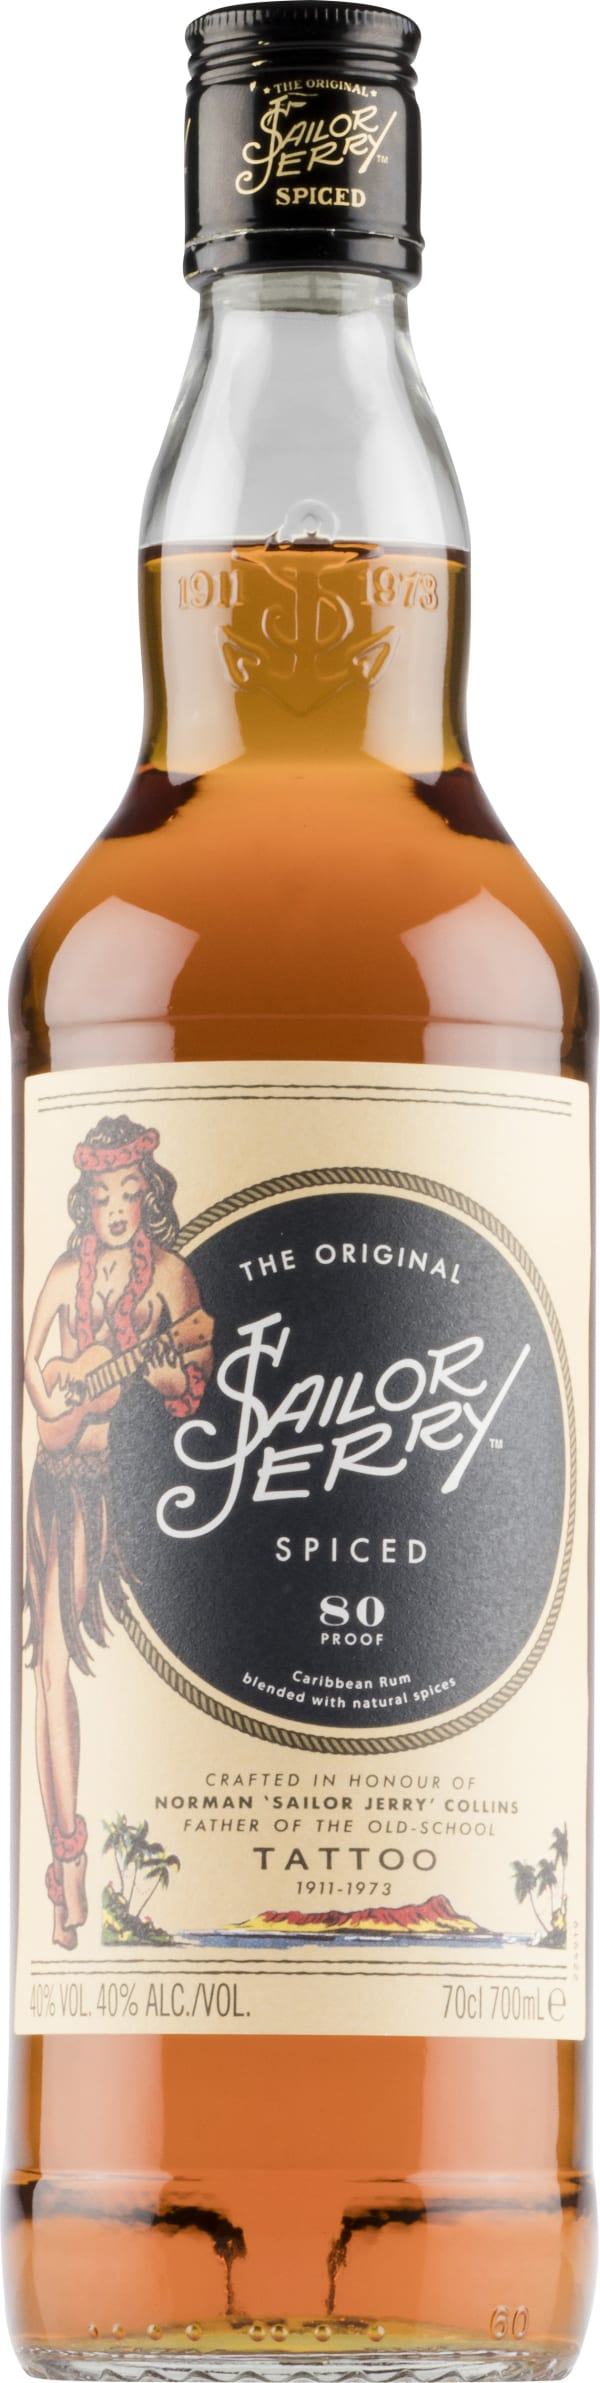 Sailor Jerry Spiced